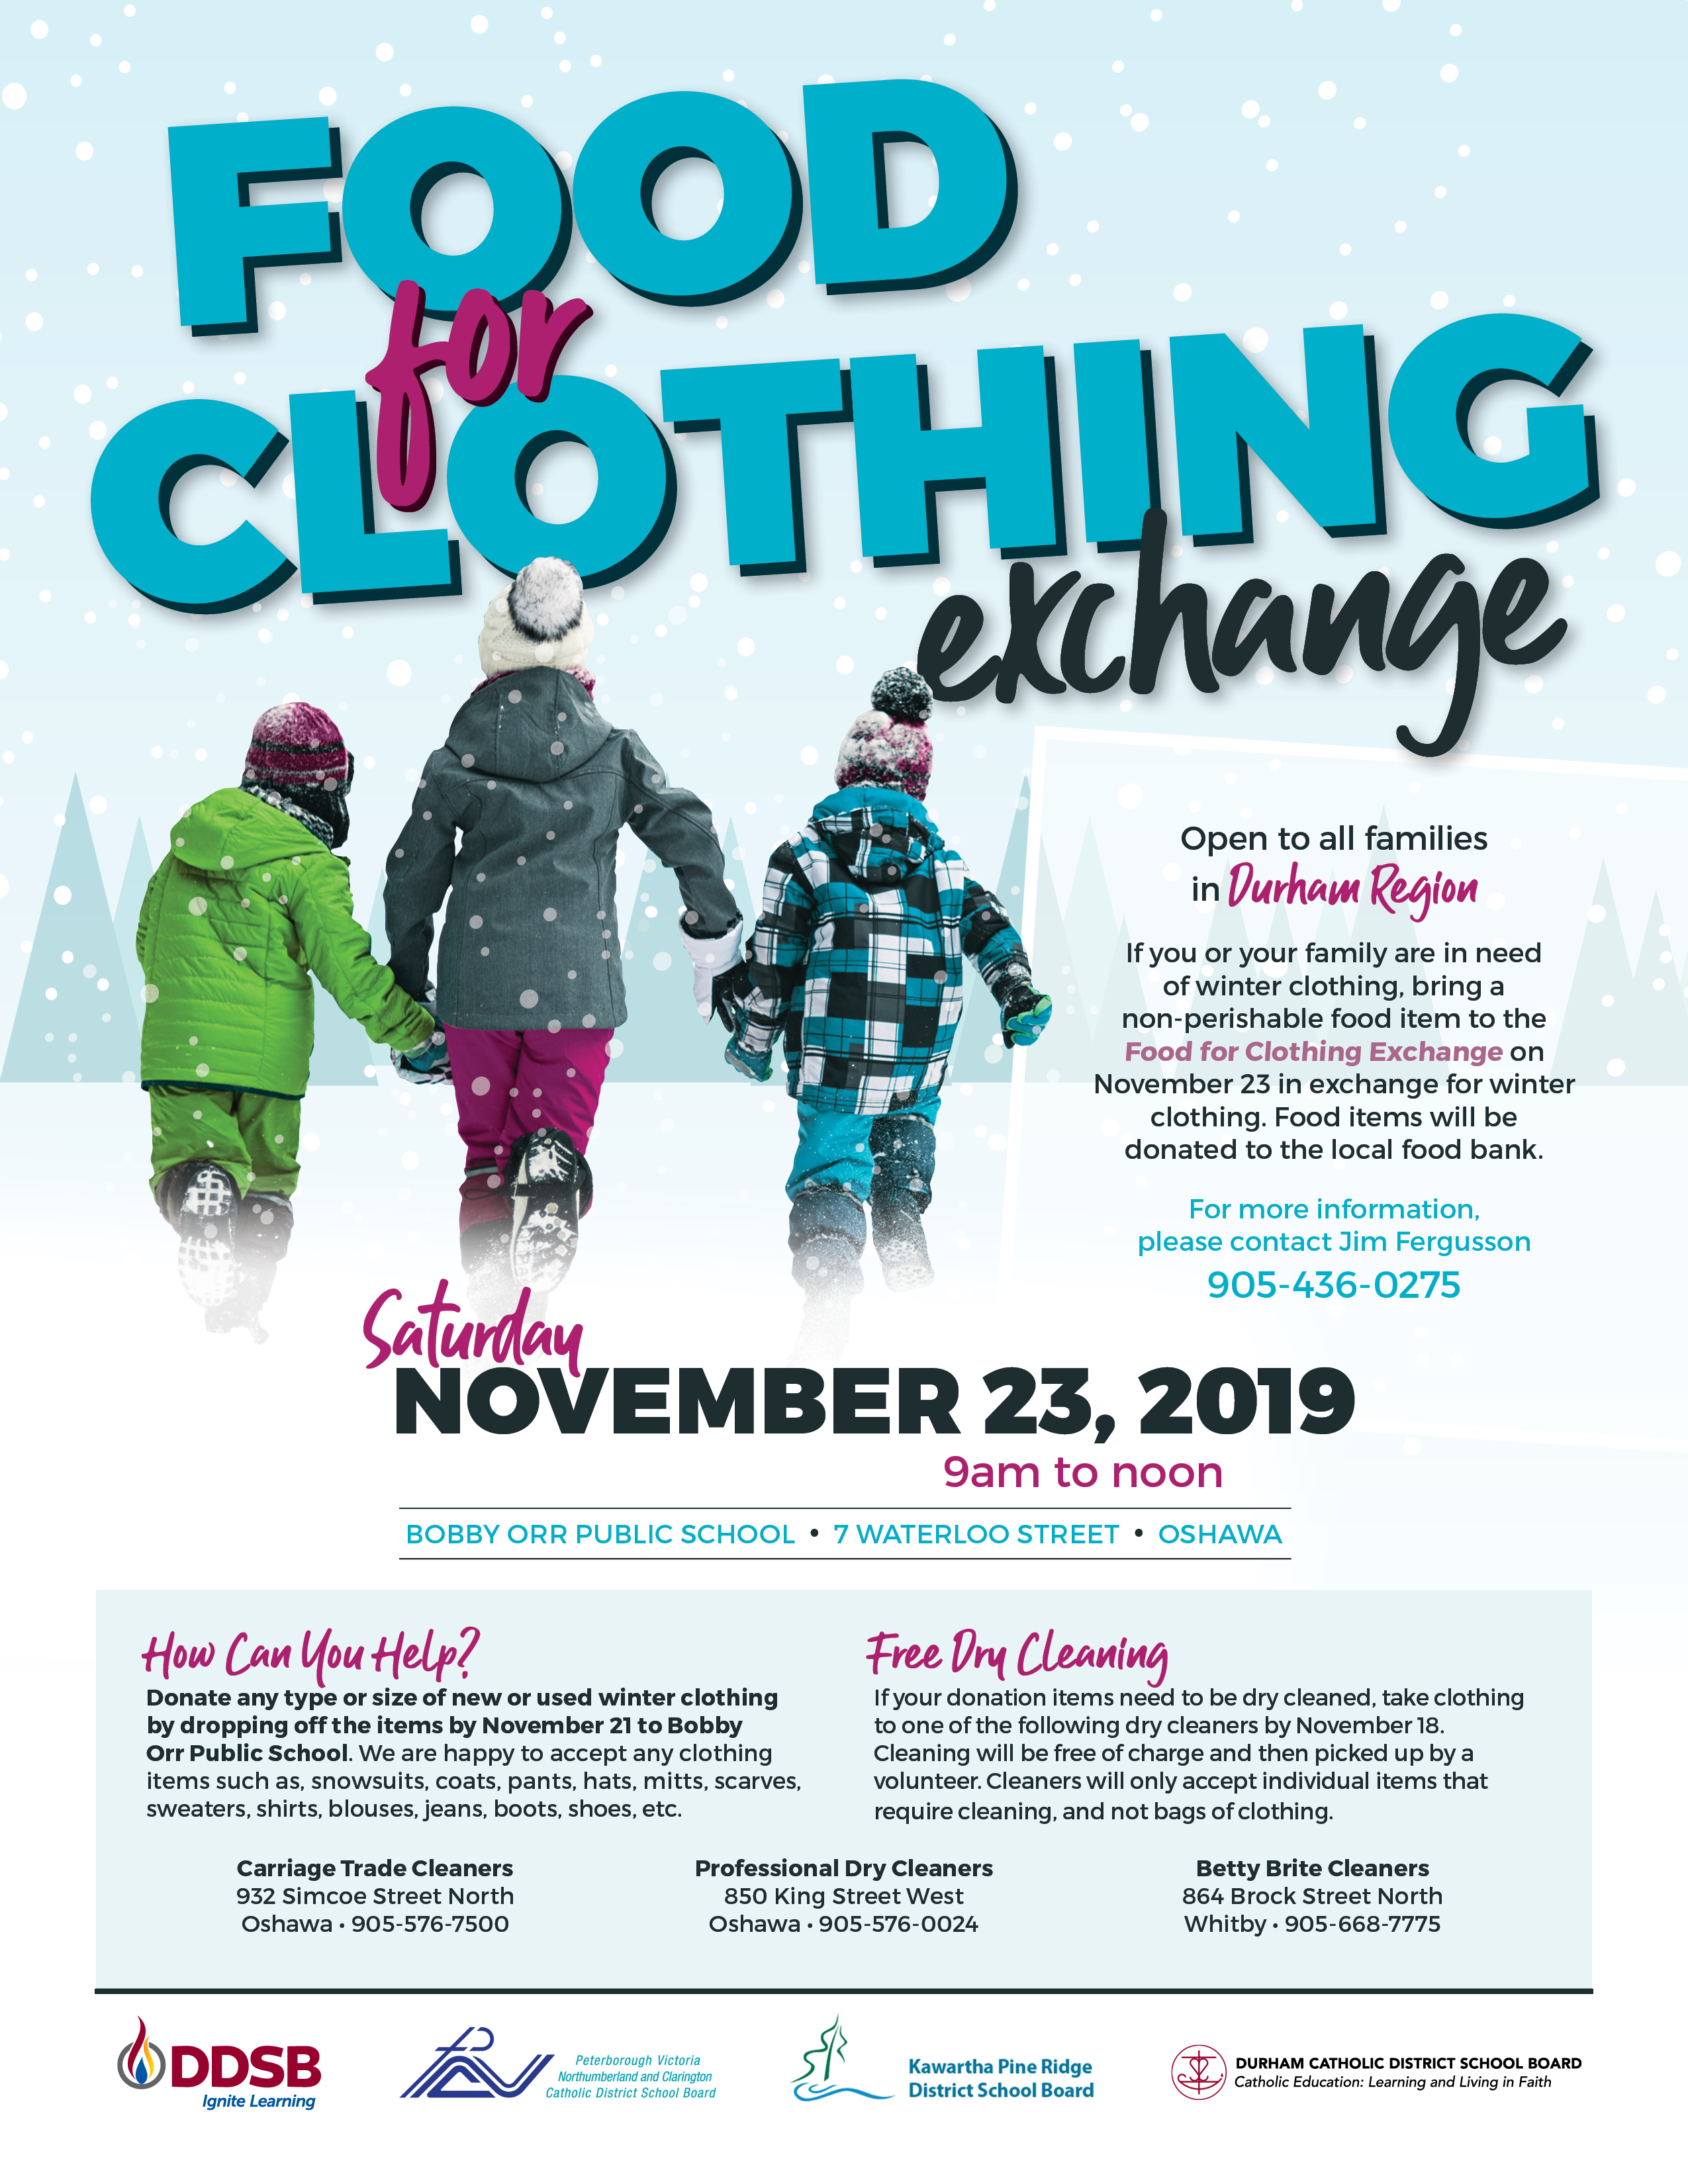 Food for clothing exchange flyer